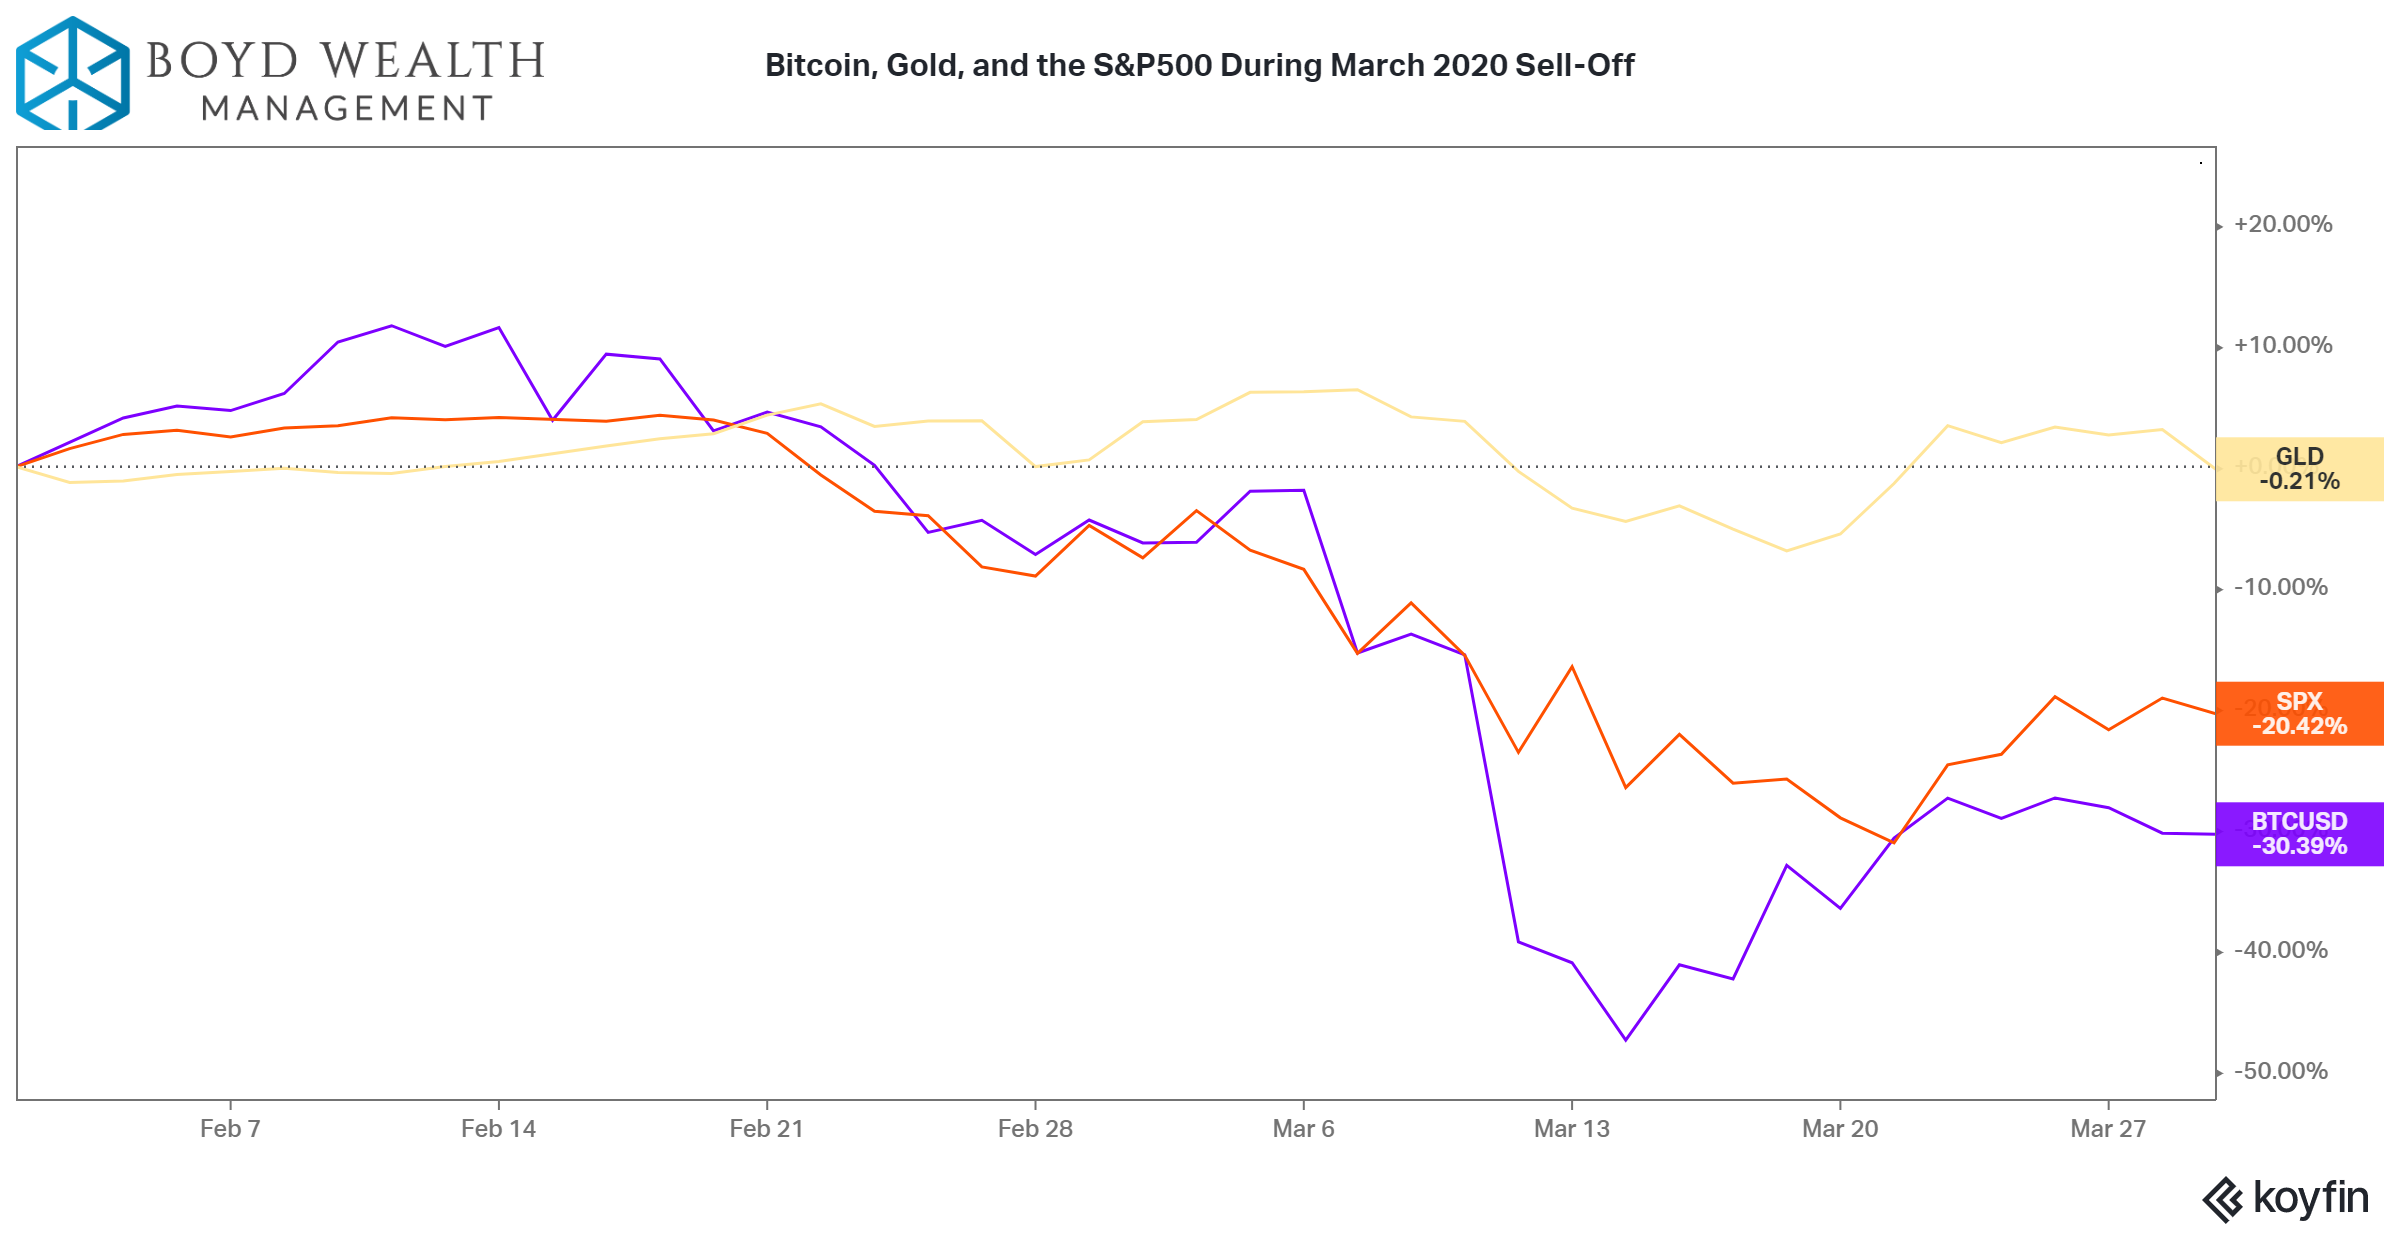 Bitcoin, gold, and S&P500 during sell off